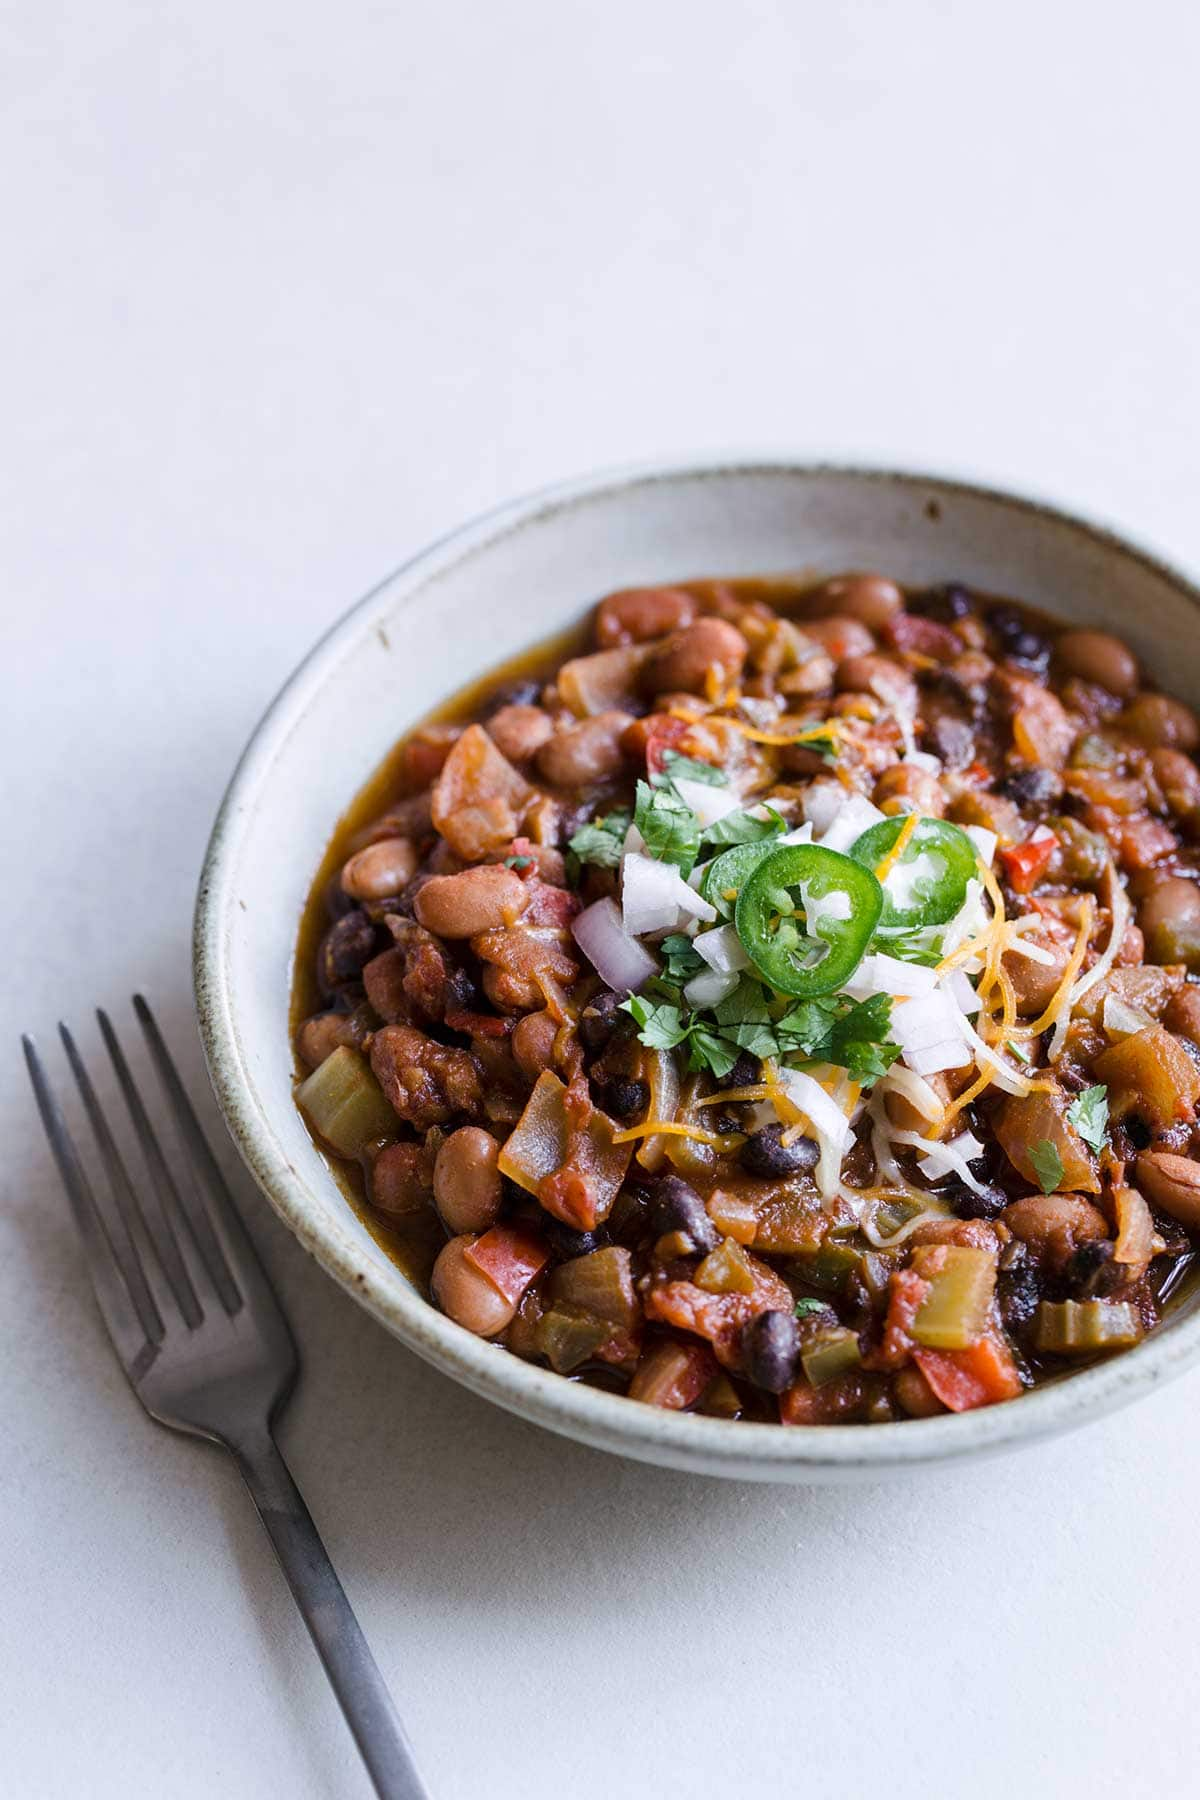 Closeup of vegan chili in a bowl